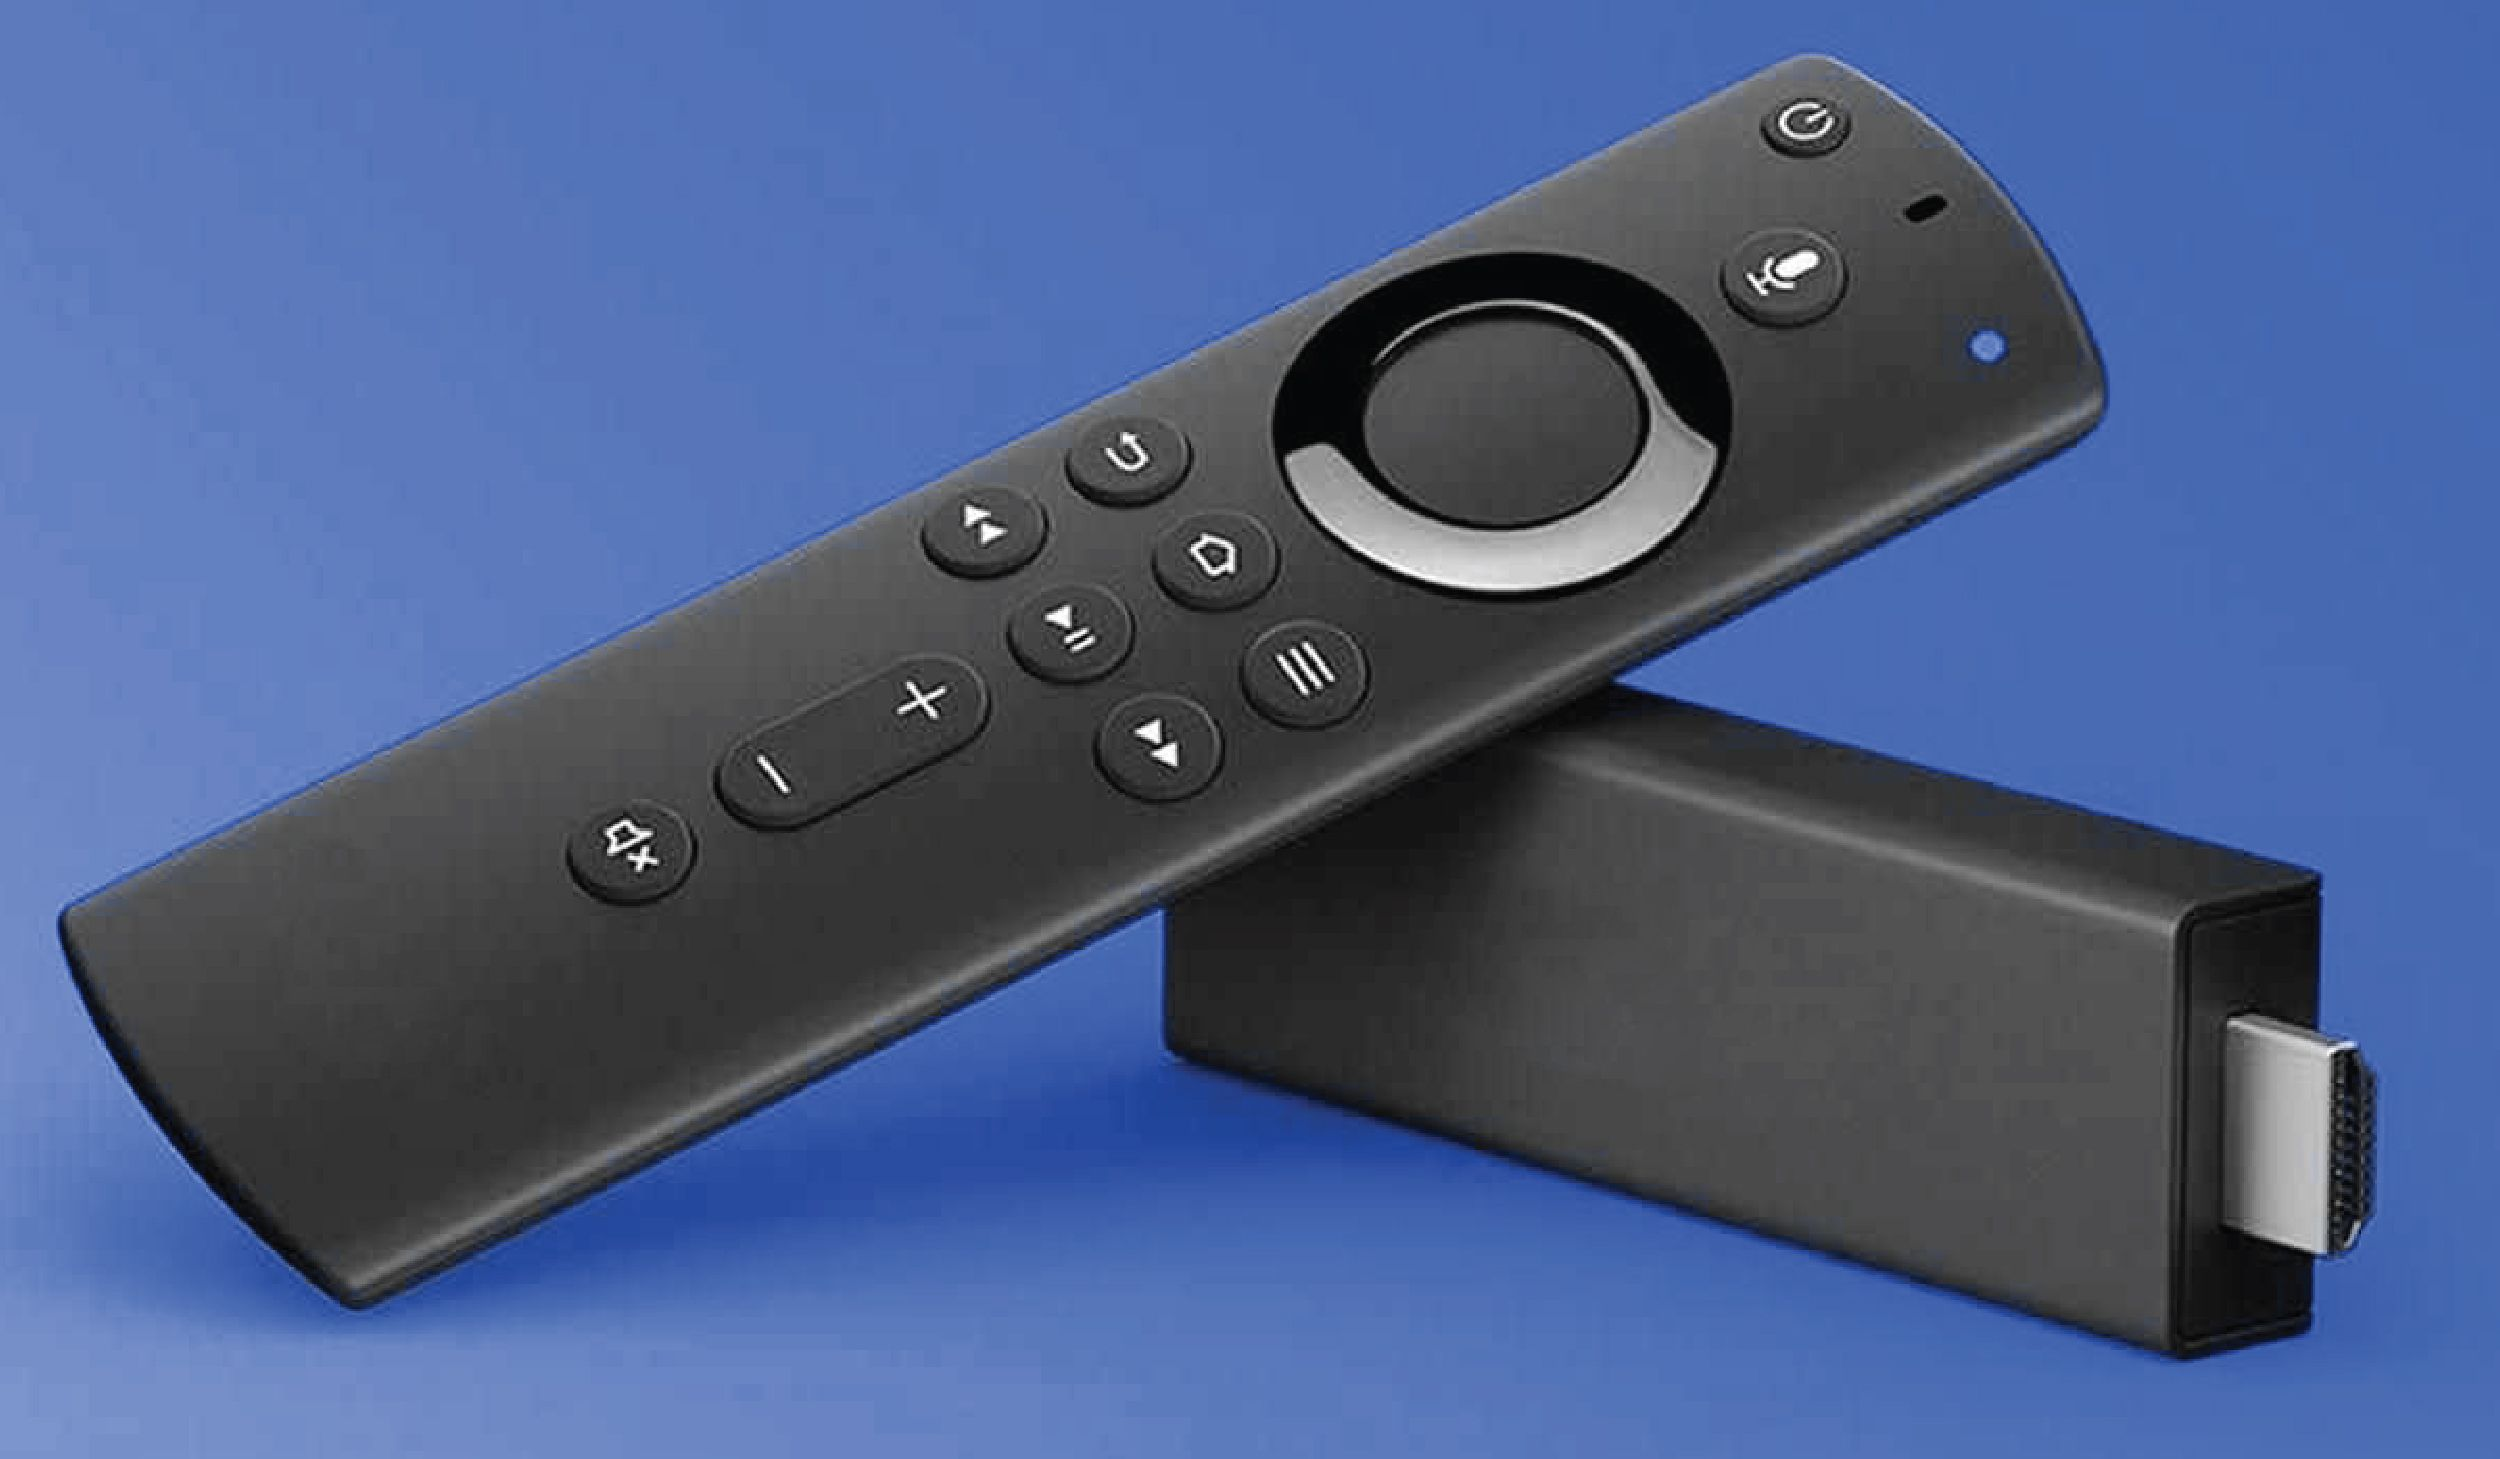 How To Set Up Amazon Fire Tv Stick Fire Tv Stick Tv Stick Amazon Fire Tv Stick